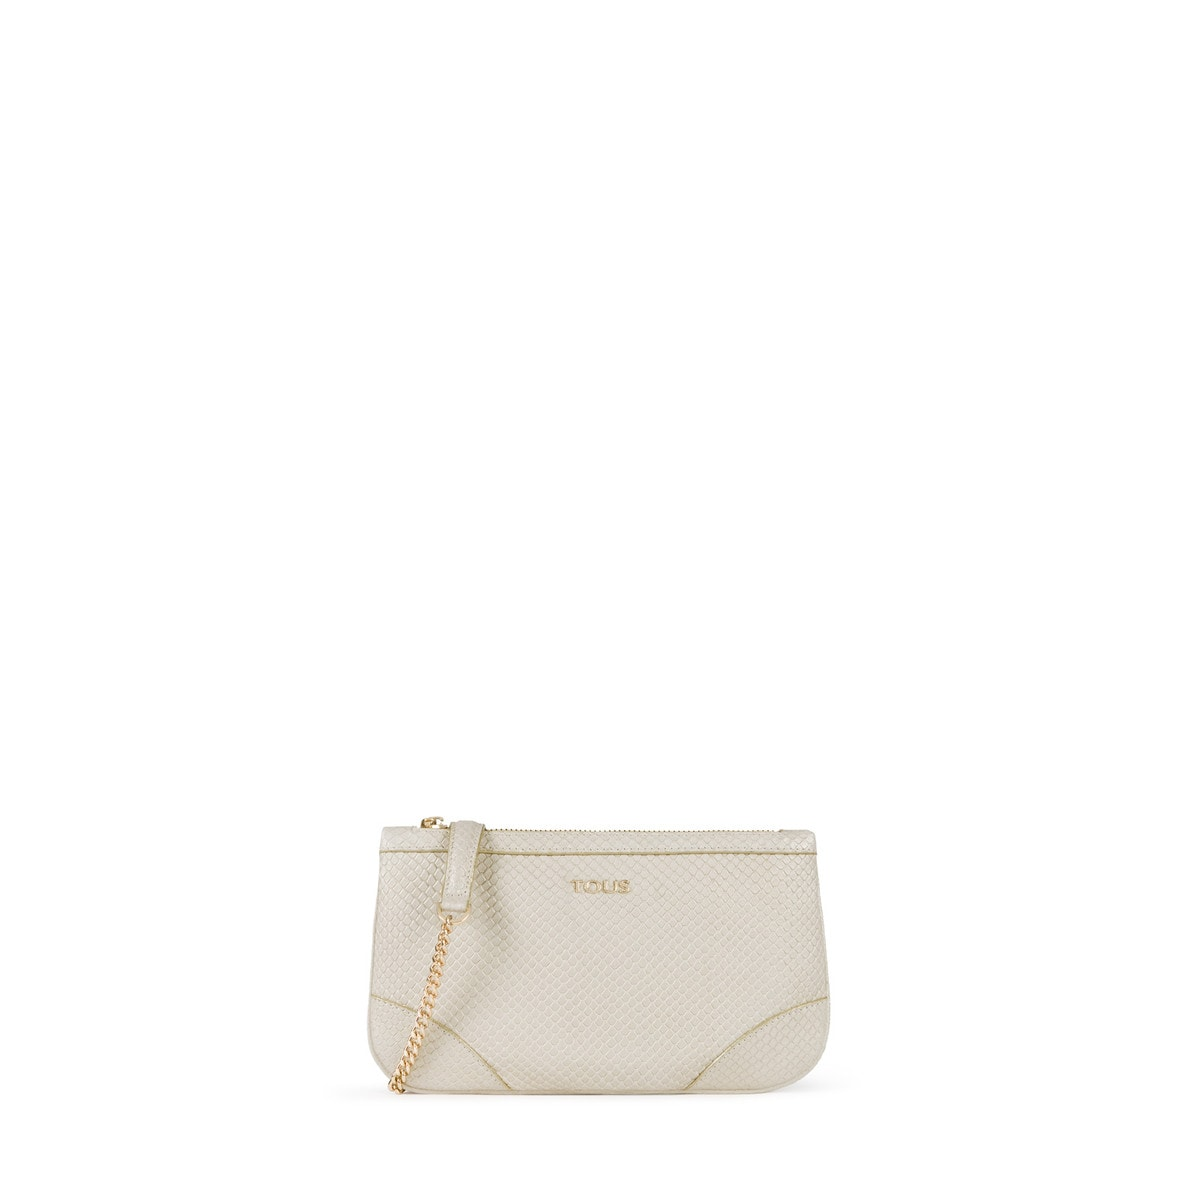 fbc2018ca Small gold colored Leather Yvonne Night Crossbody bag - Tous Site GB